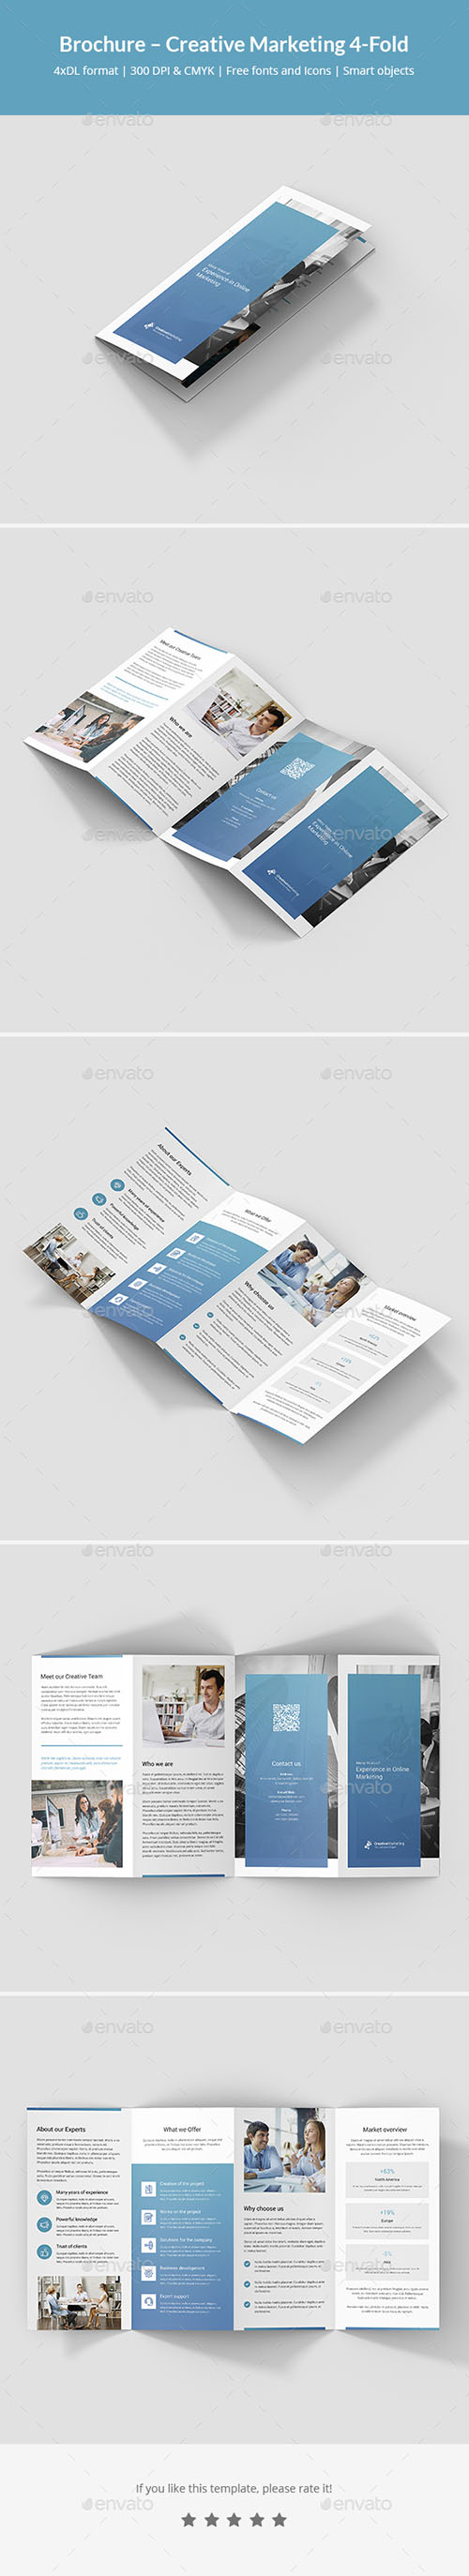 GR - Brochure – Creative Marketing 4-Fold 21487774